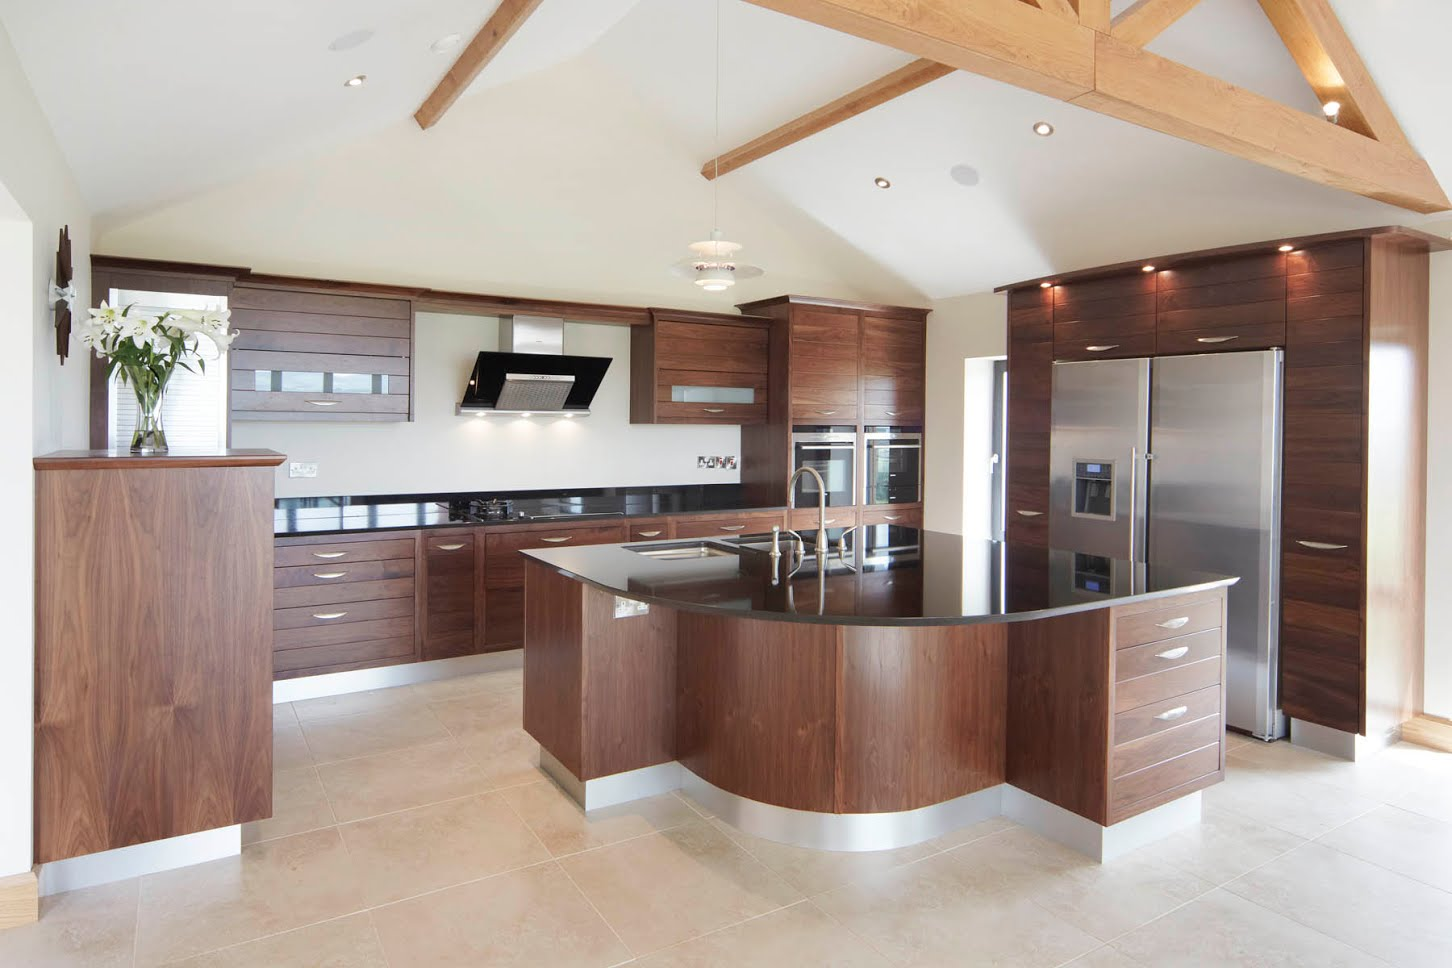 They are leading kitchen worktop suppliers having an amazing range of various types of worktops that include laminated wood quartz granite and other